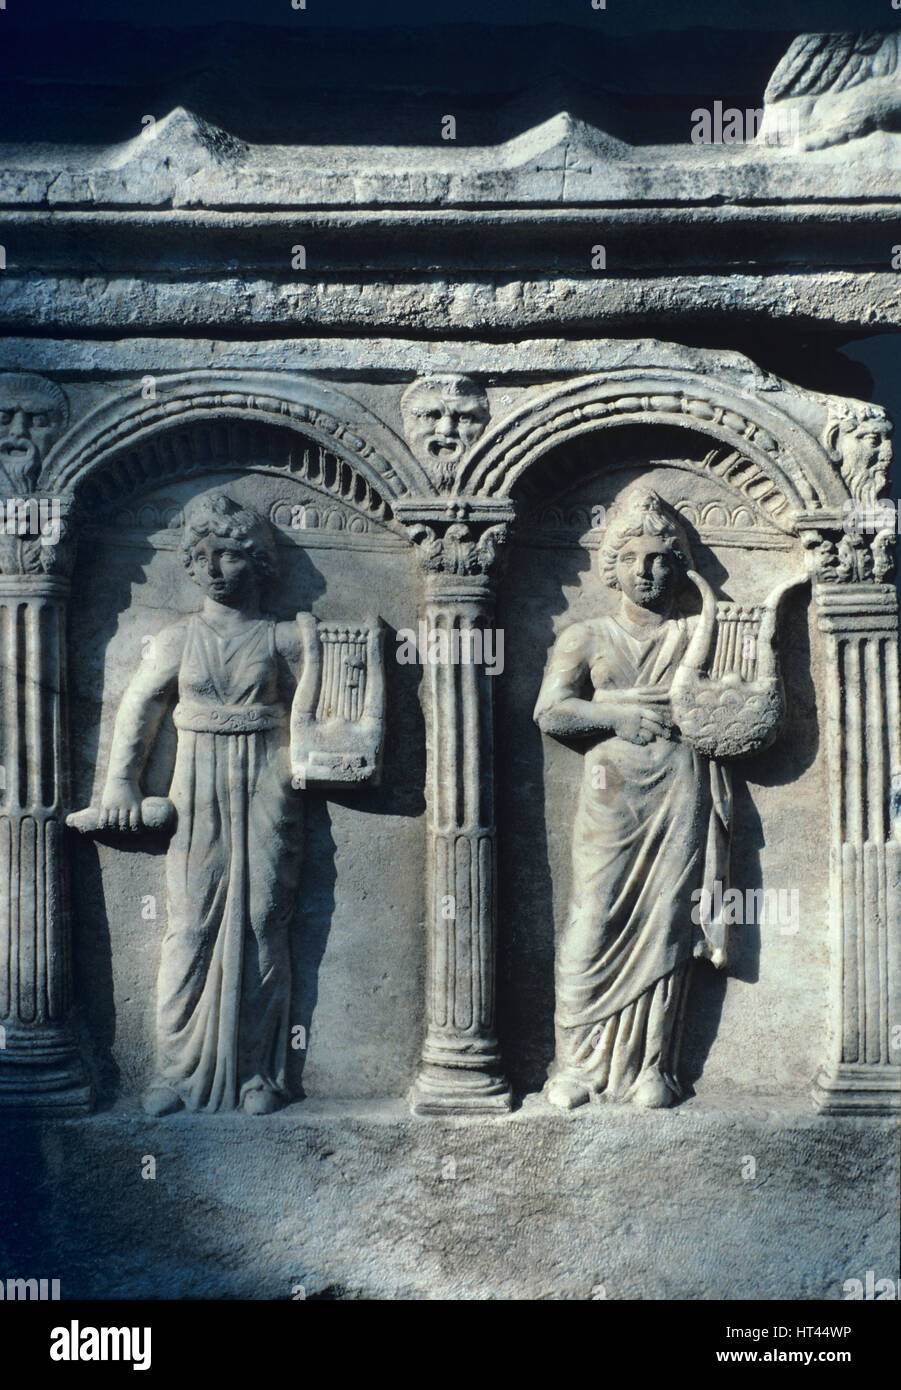 Women Playing Lyres on Hellenistic Tomb or Ancient Greek Sacrophagus from Ephesus Turkey - Stock Image